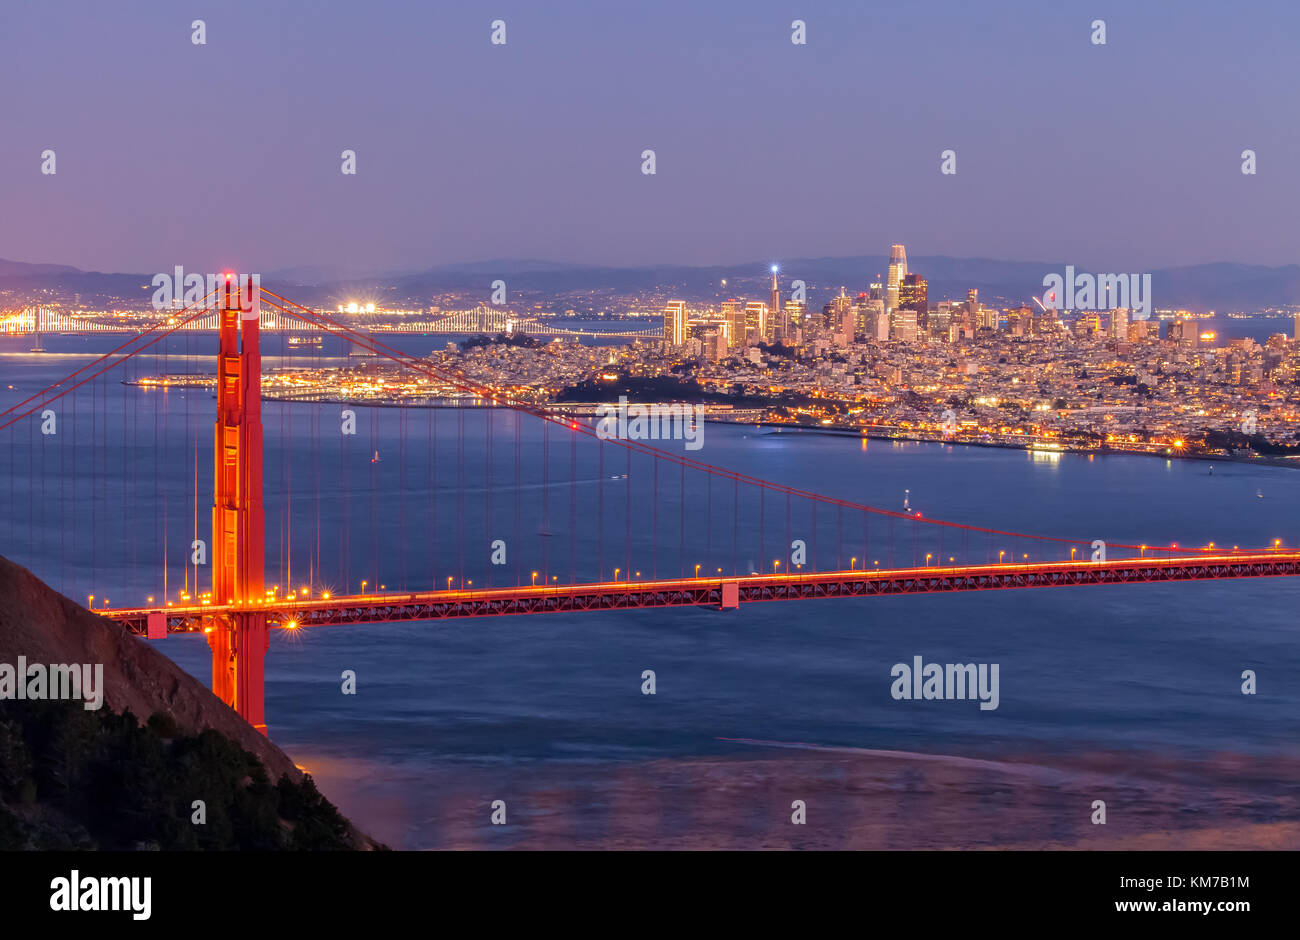 Golden Gate Bridge and the San Francisco City light up at nightfall, California, United States. - Stock Image